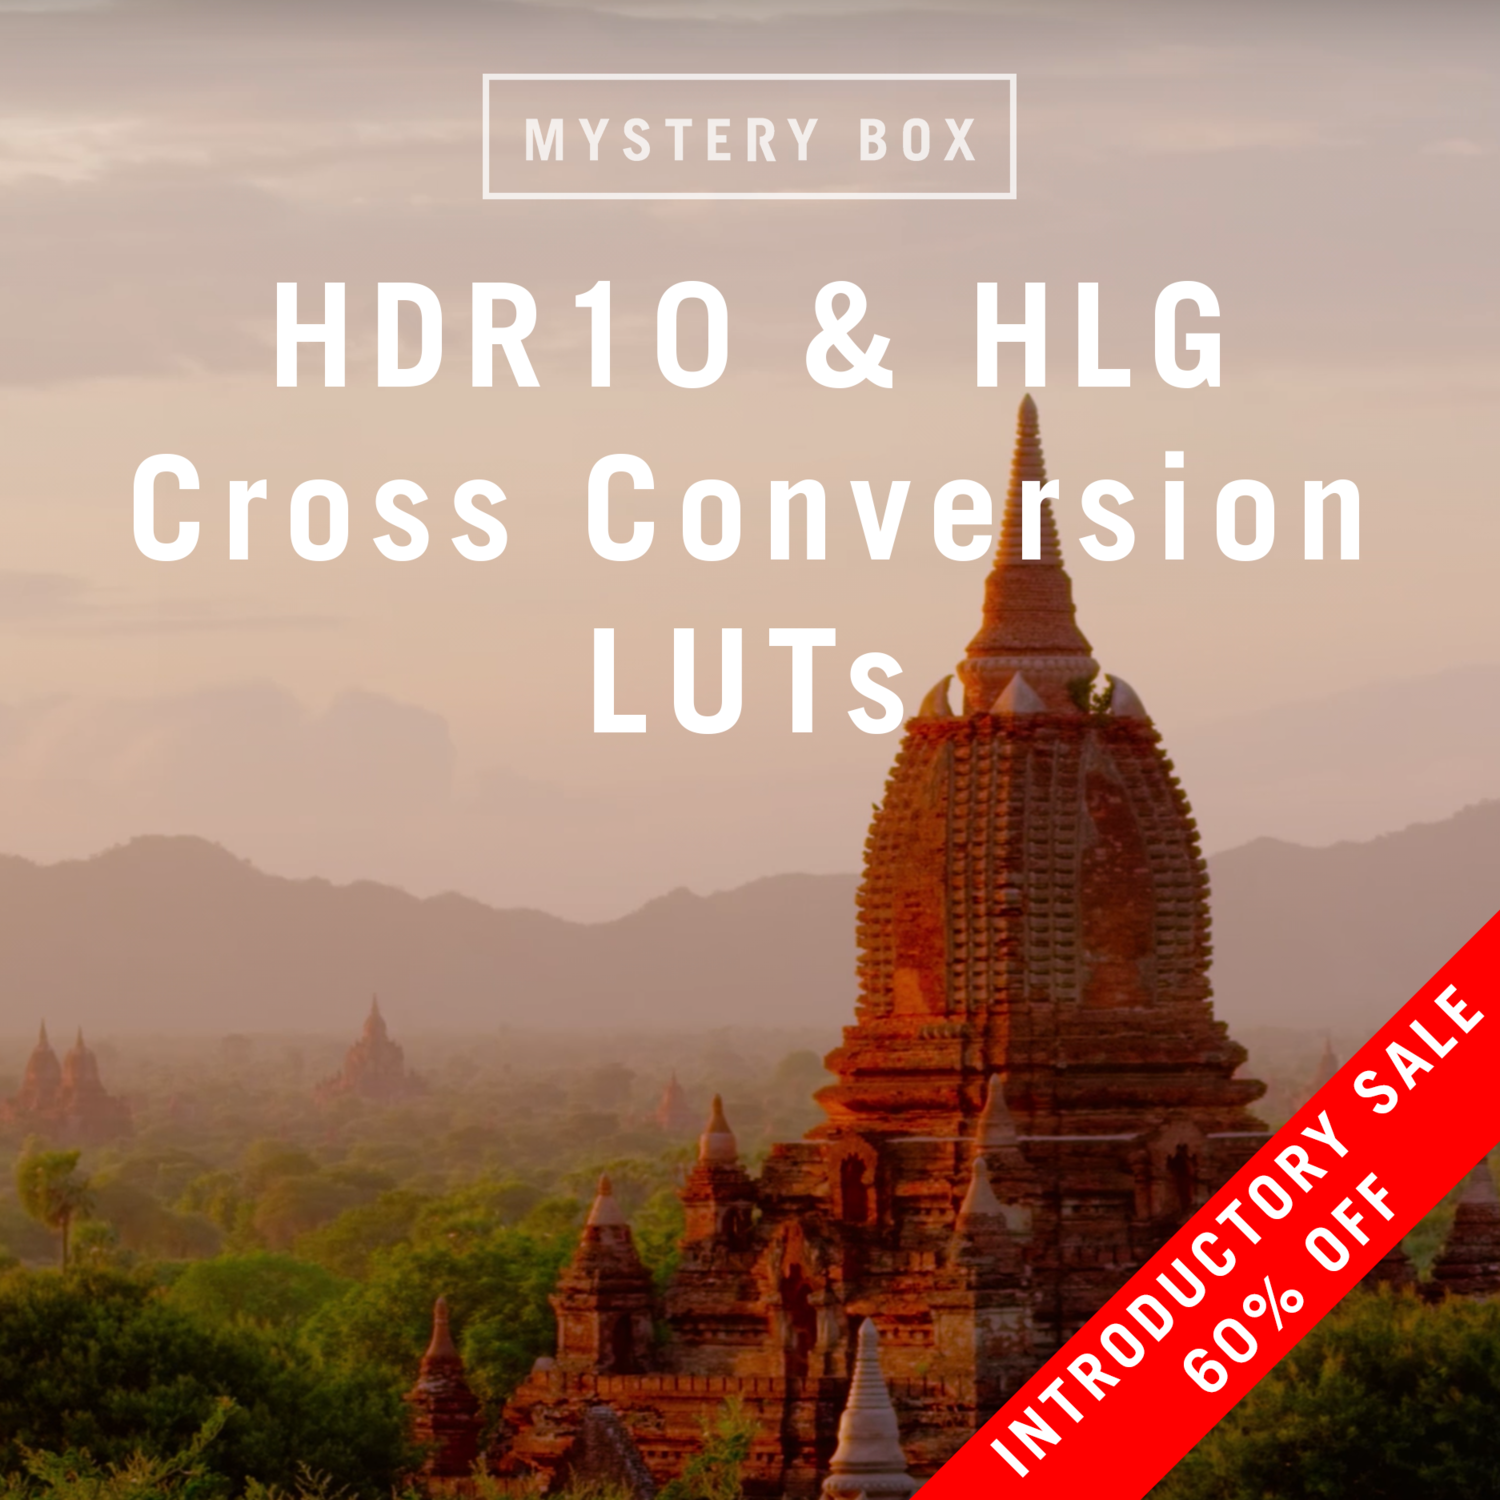 HDR10 & HLG Cross Conversion LUTs v1 0 — Mystery Box